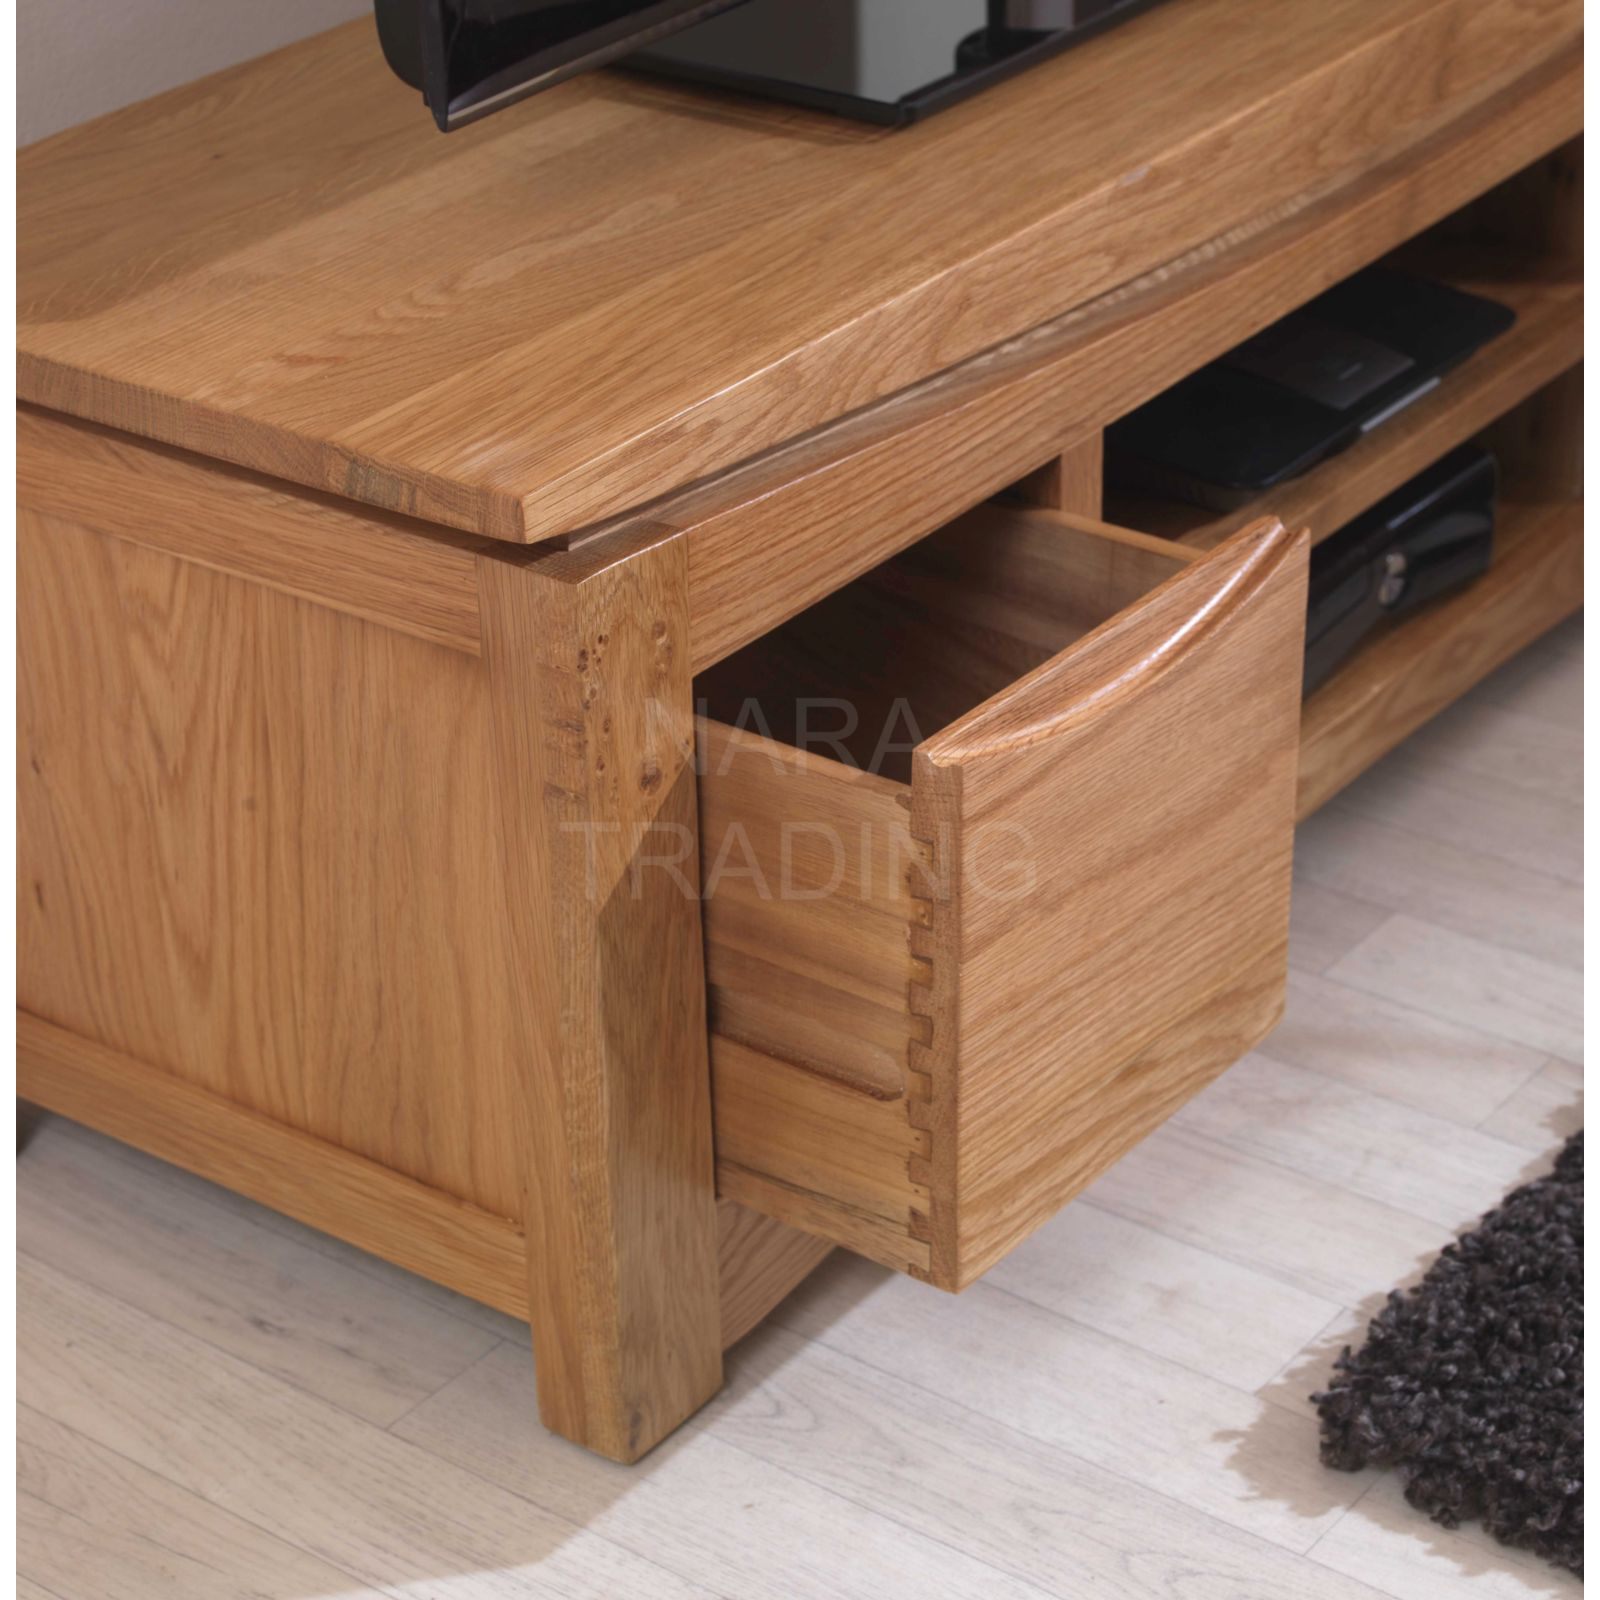 cupboard dvd cd rack waxed cloudfront staircase unit pine url resize width media cabinet storage drawers solid light products finish net